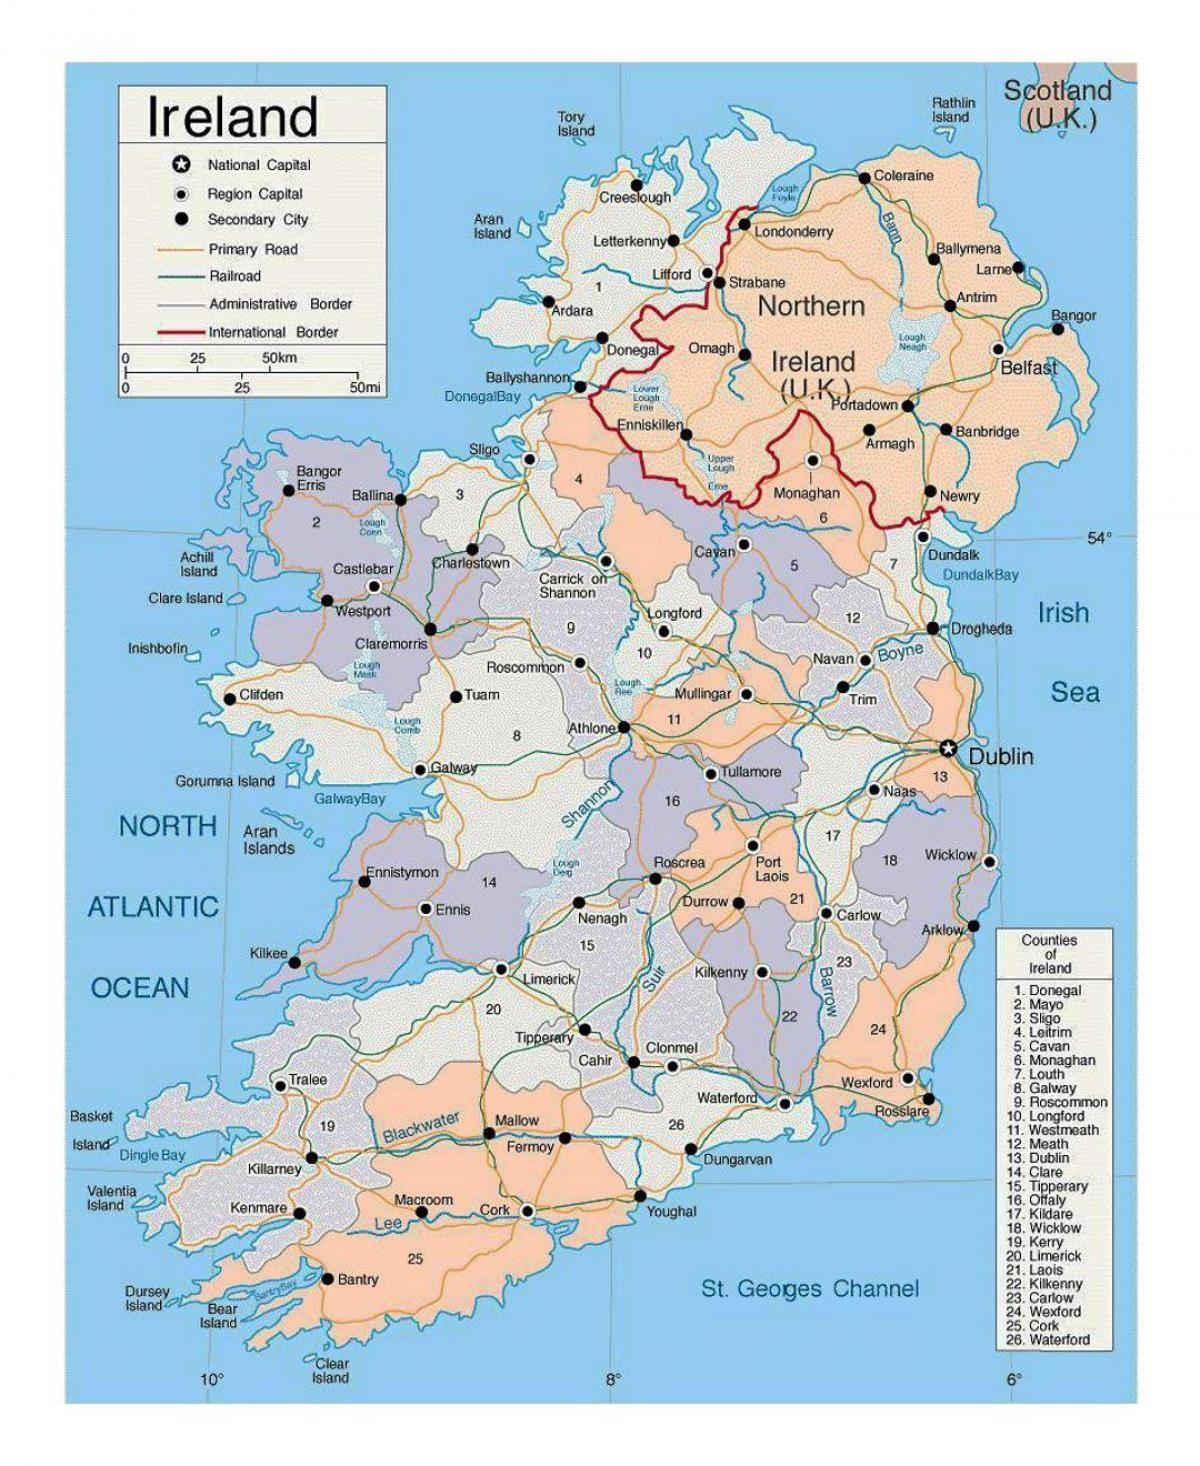 Cities In Ireland Map.Ireland Cities Map Map Of Ireland With Cities Northern Europe